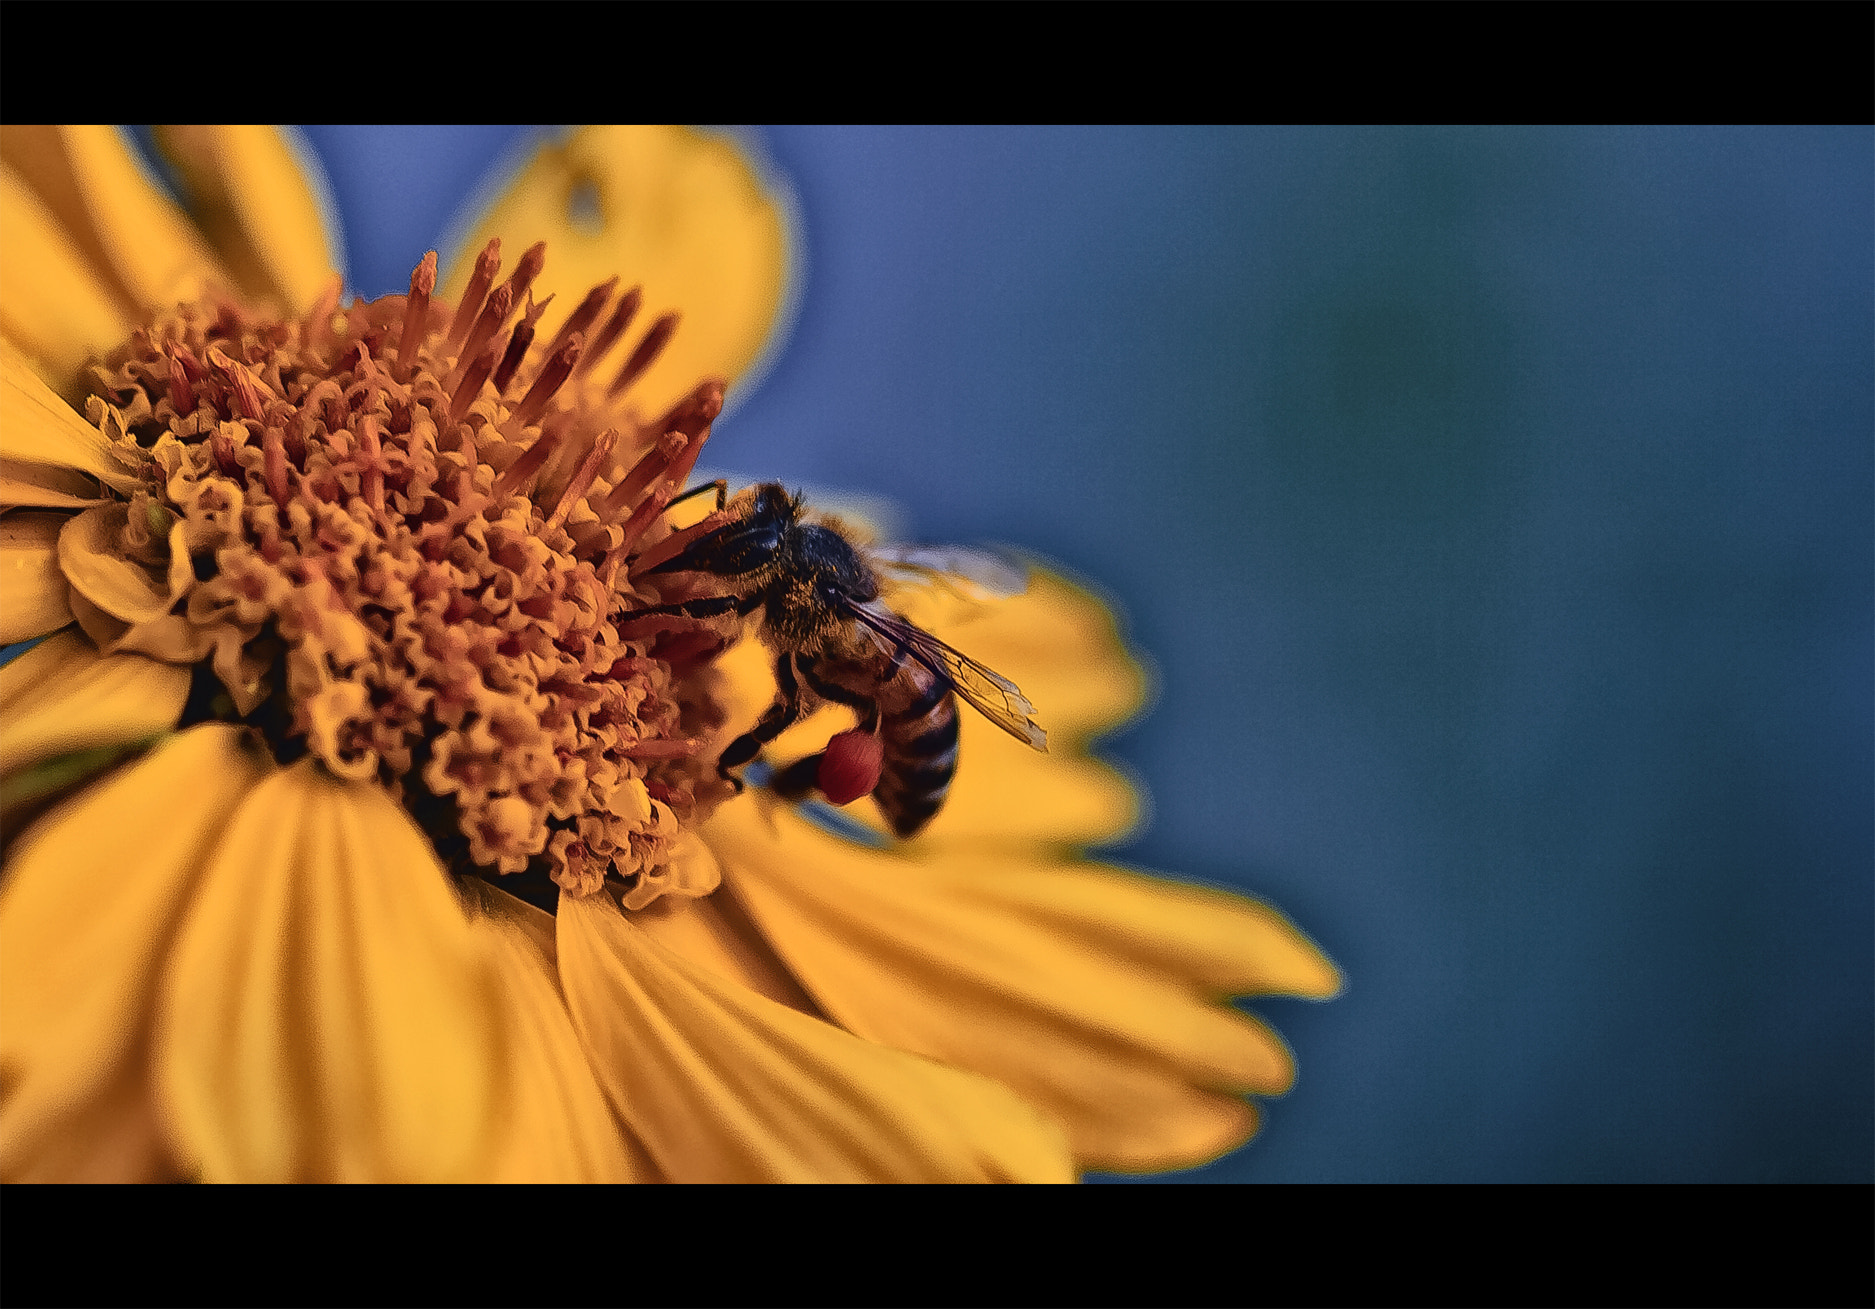 Photograph bee by SuLTaN AbdullaH on 500px